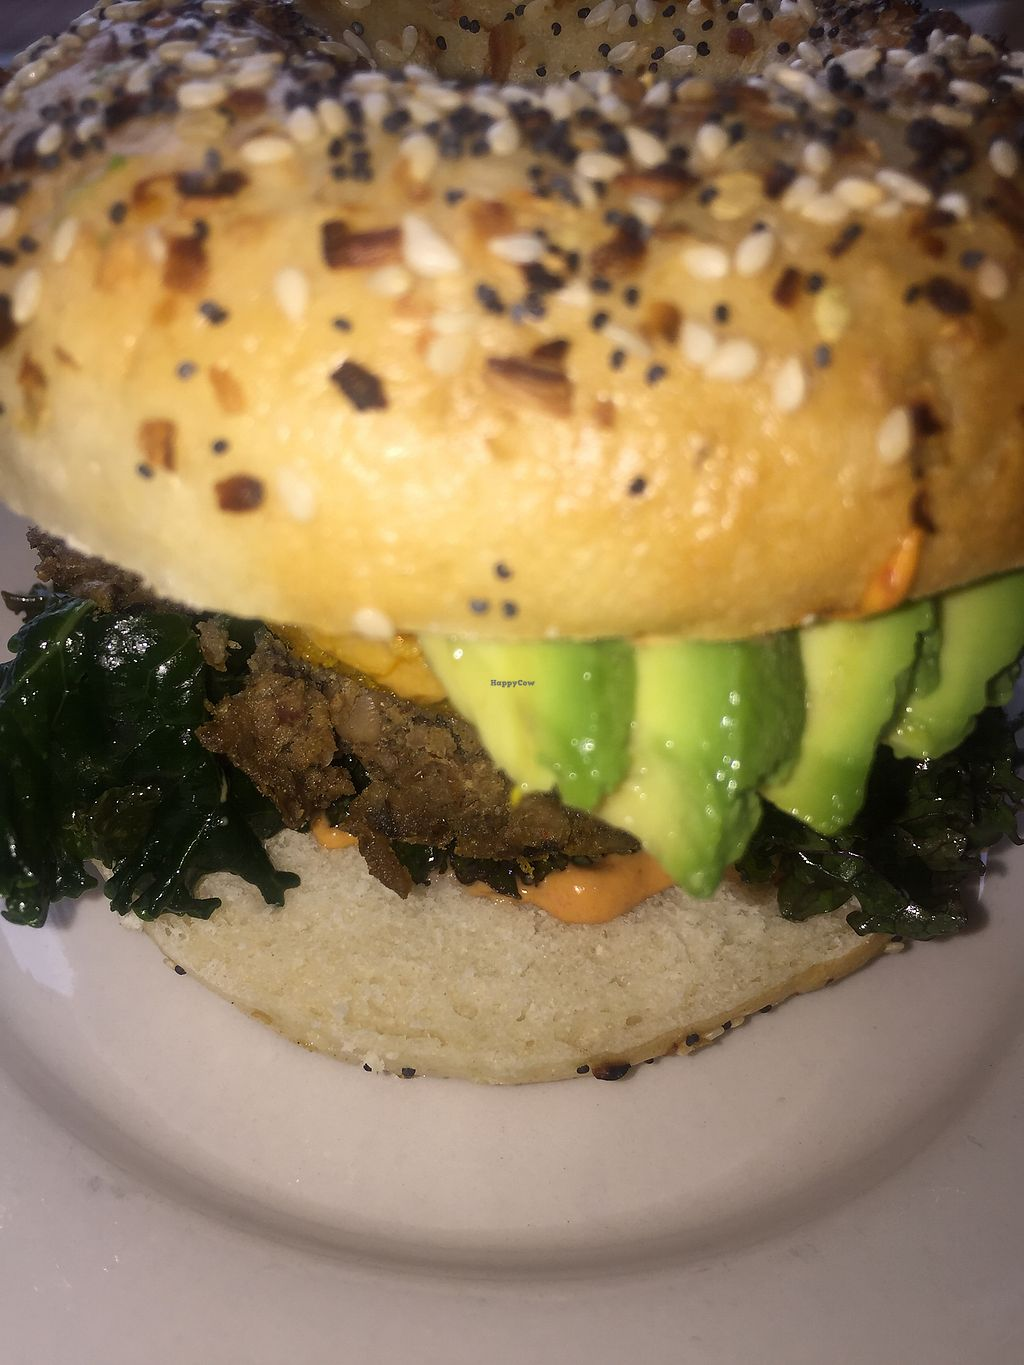 """Photo of Dulce Vegan Bakery and Cafe  by <a href=""""/members/profile/terrywashere"""">terrywashere</a> <br/>breakfast bagel.  <br/> June 29, 2017  - <a href='/contact/abuse/image/26735/274587'>Report</a>"""